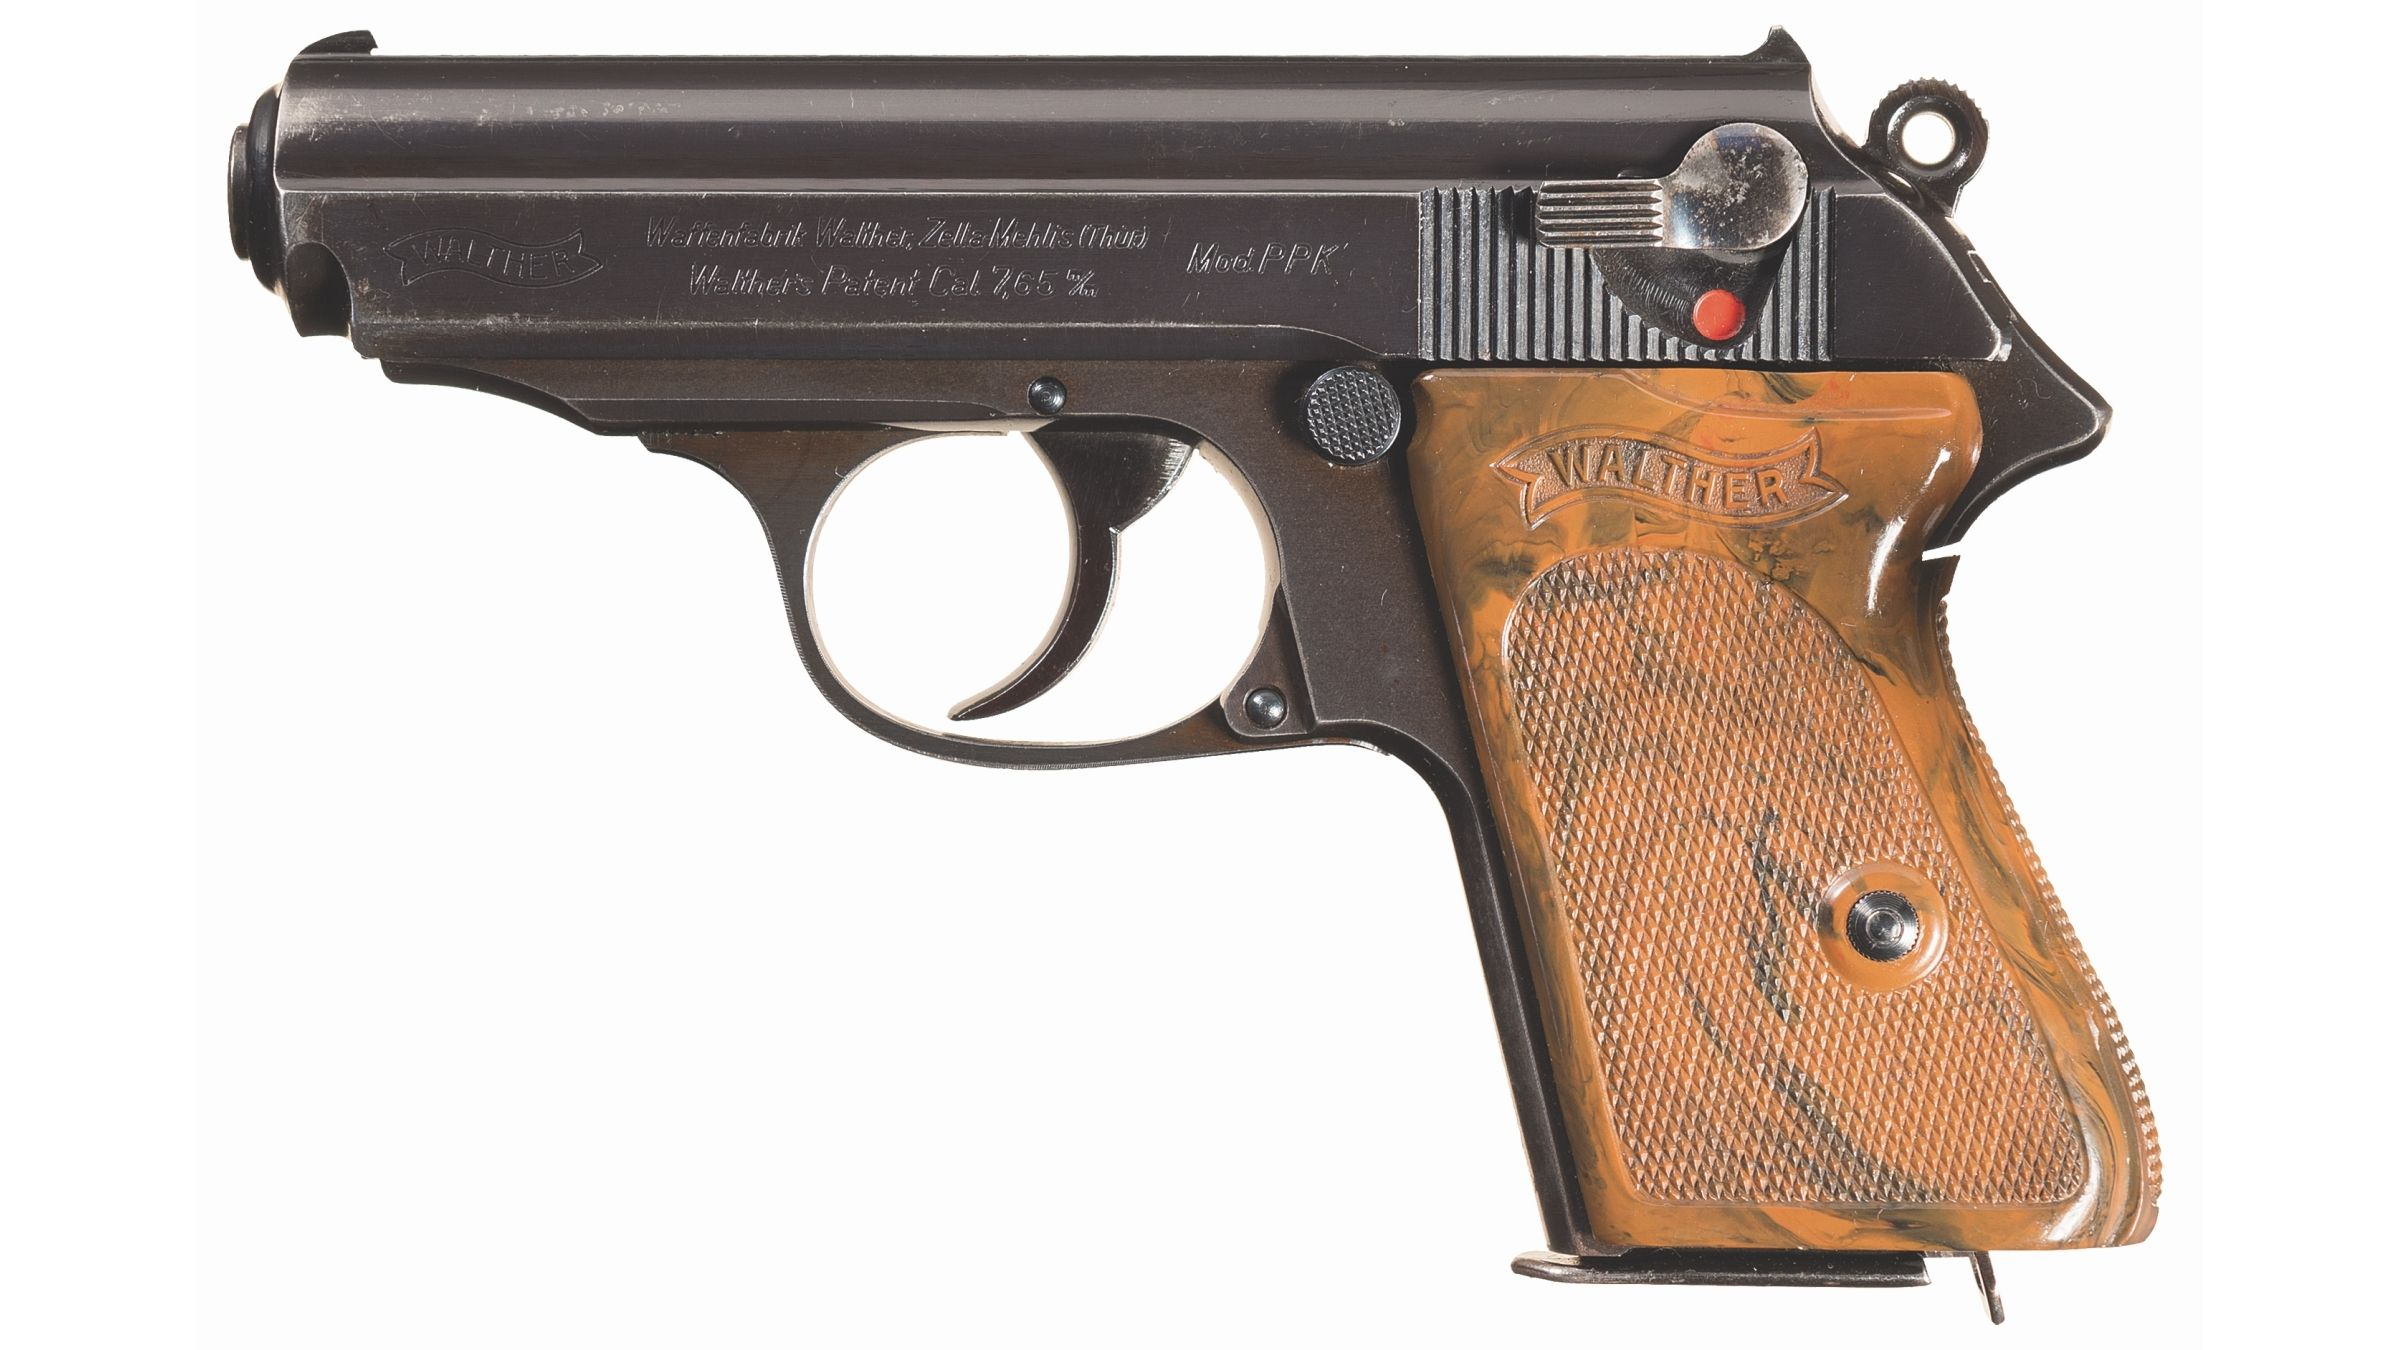 Walther ppk s serial number